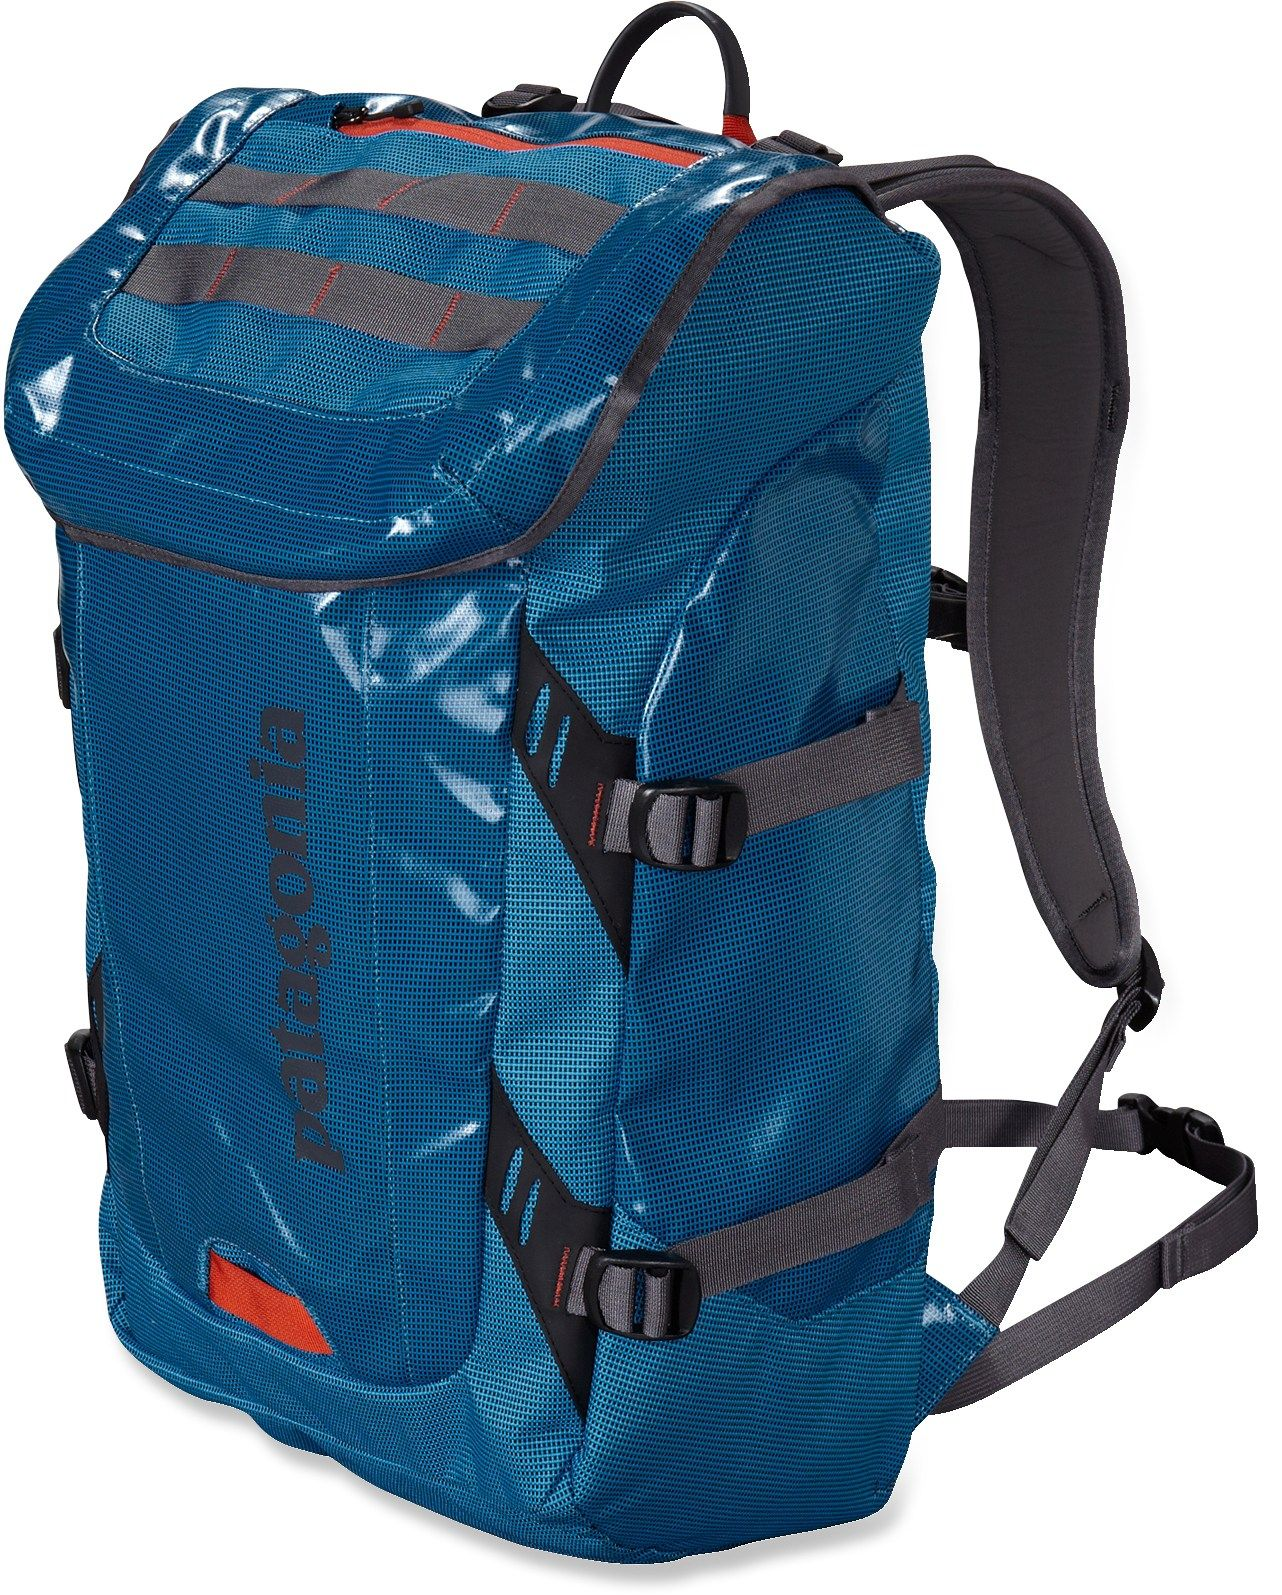 The Patagonia Black Hole daypack is a highly water-resistant, super ...